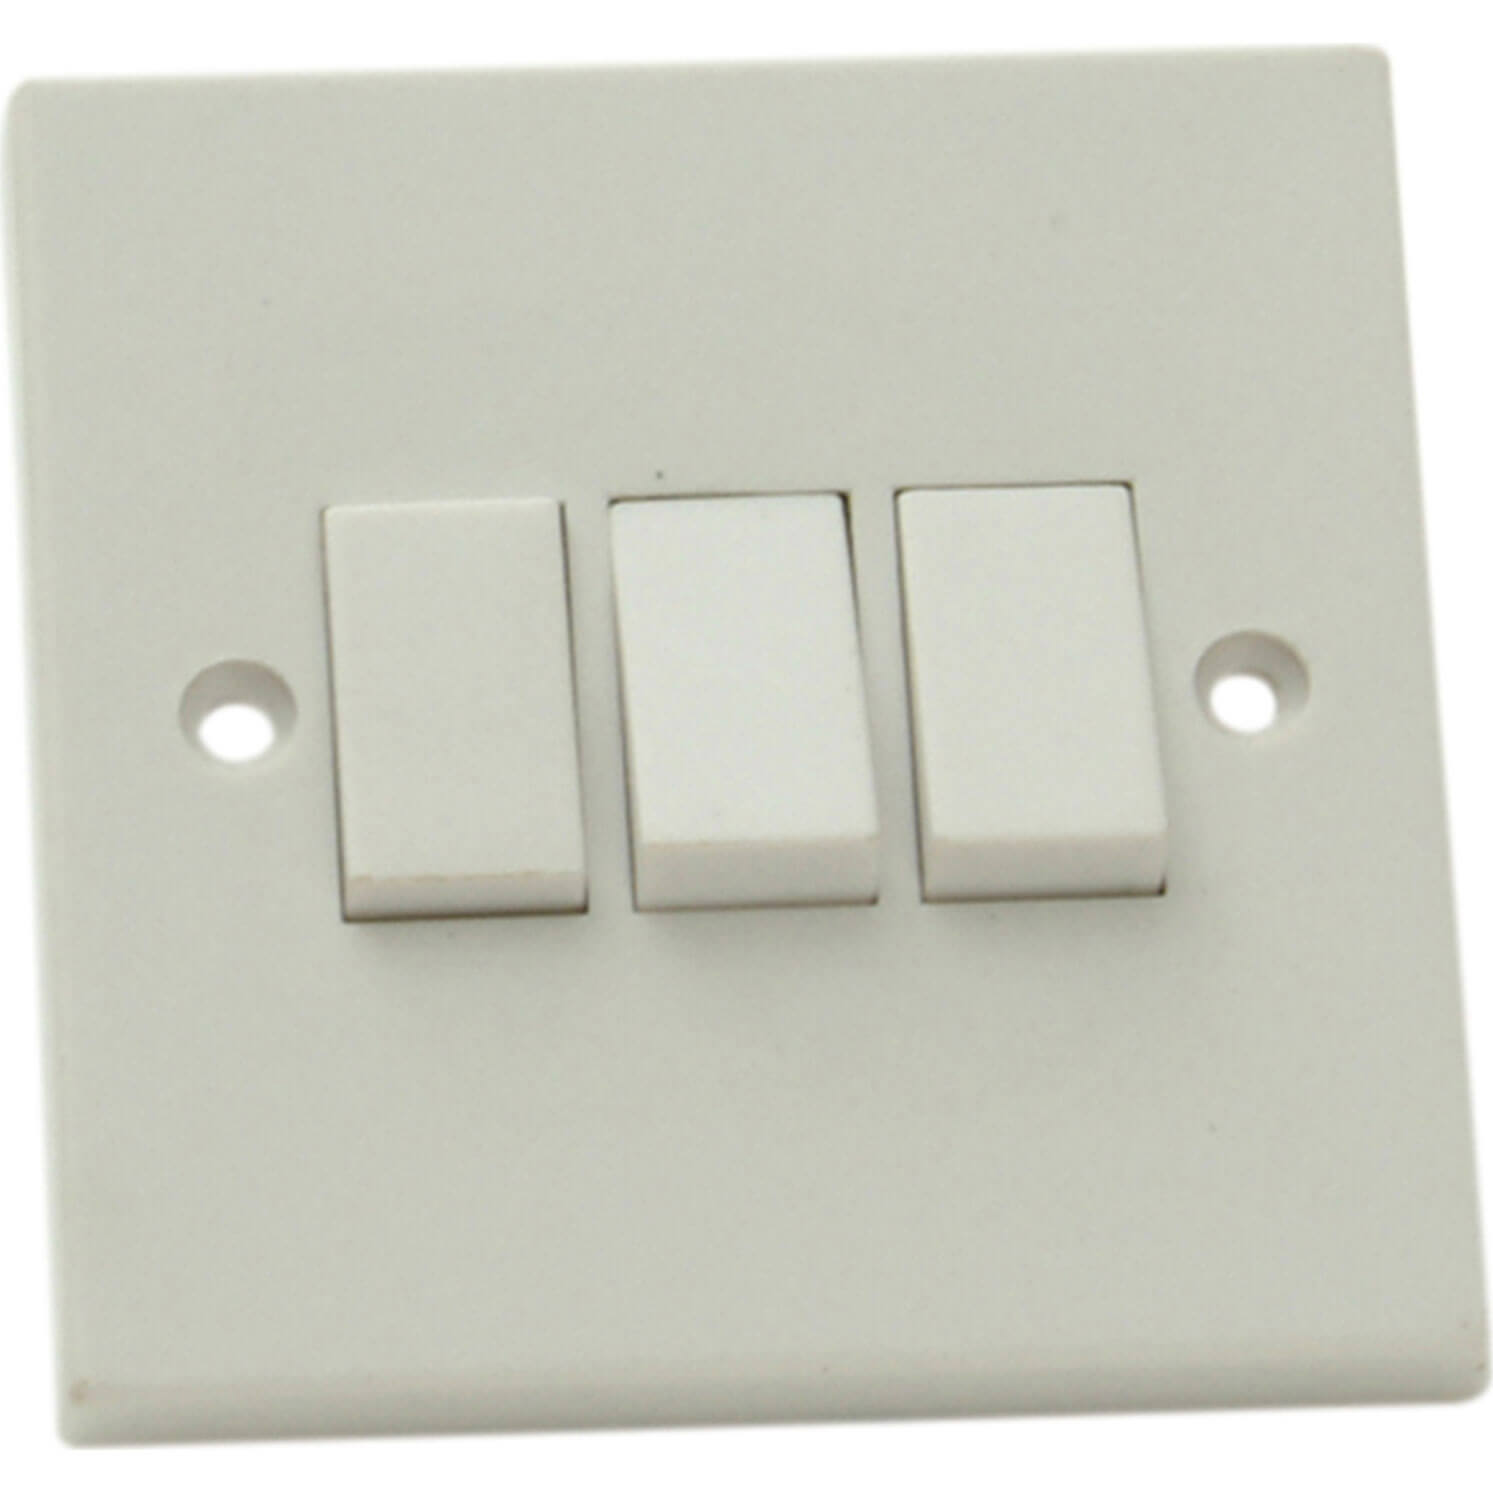 Smj 3 Gang 2 Way Light Switch